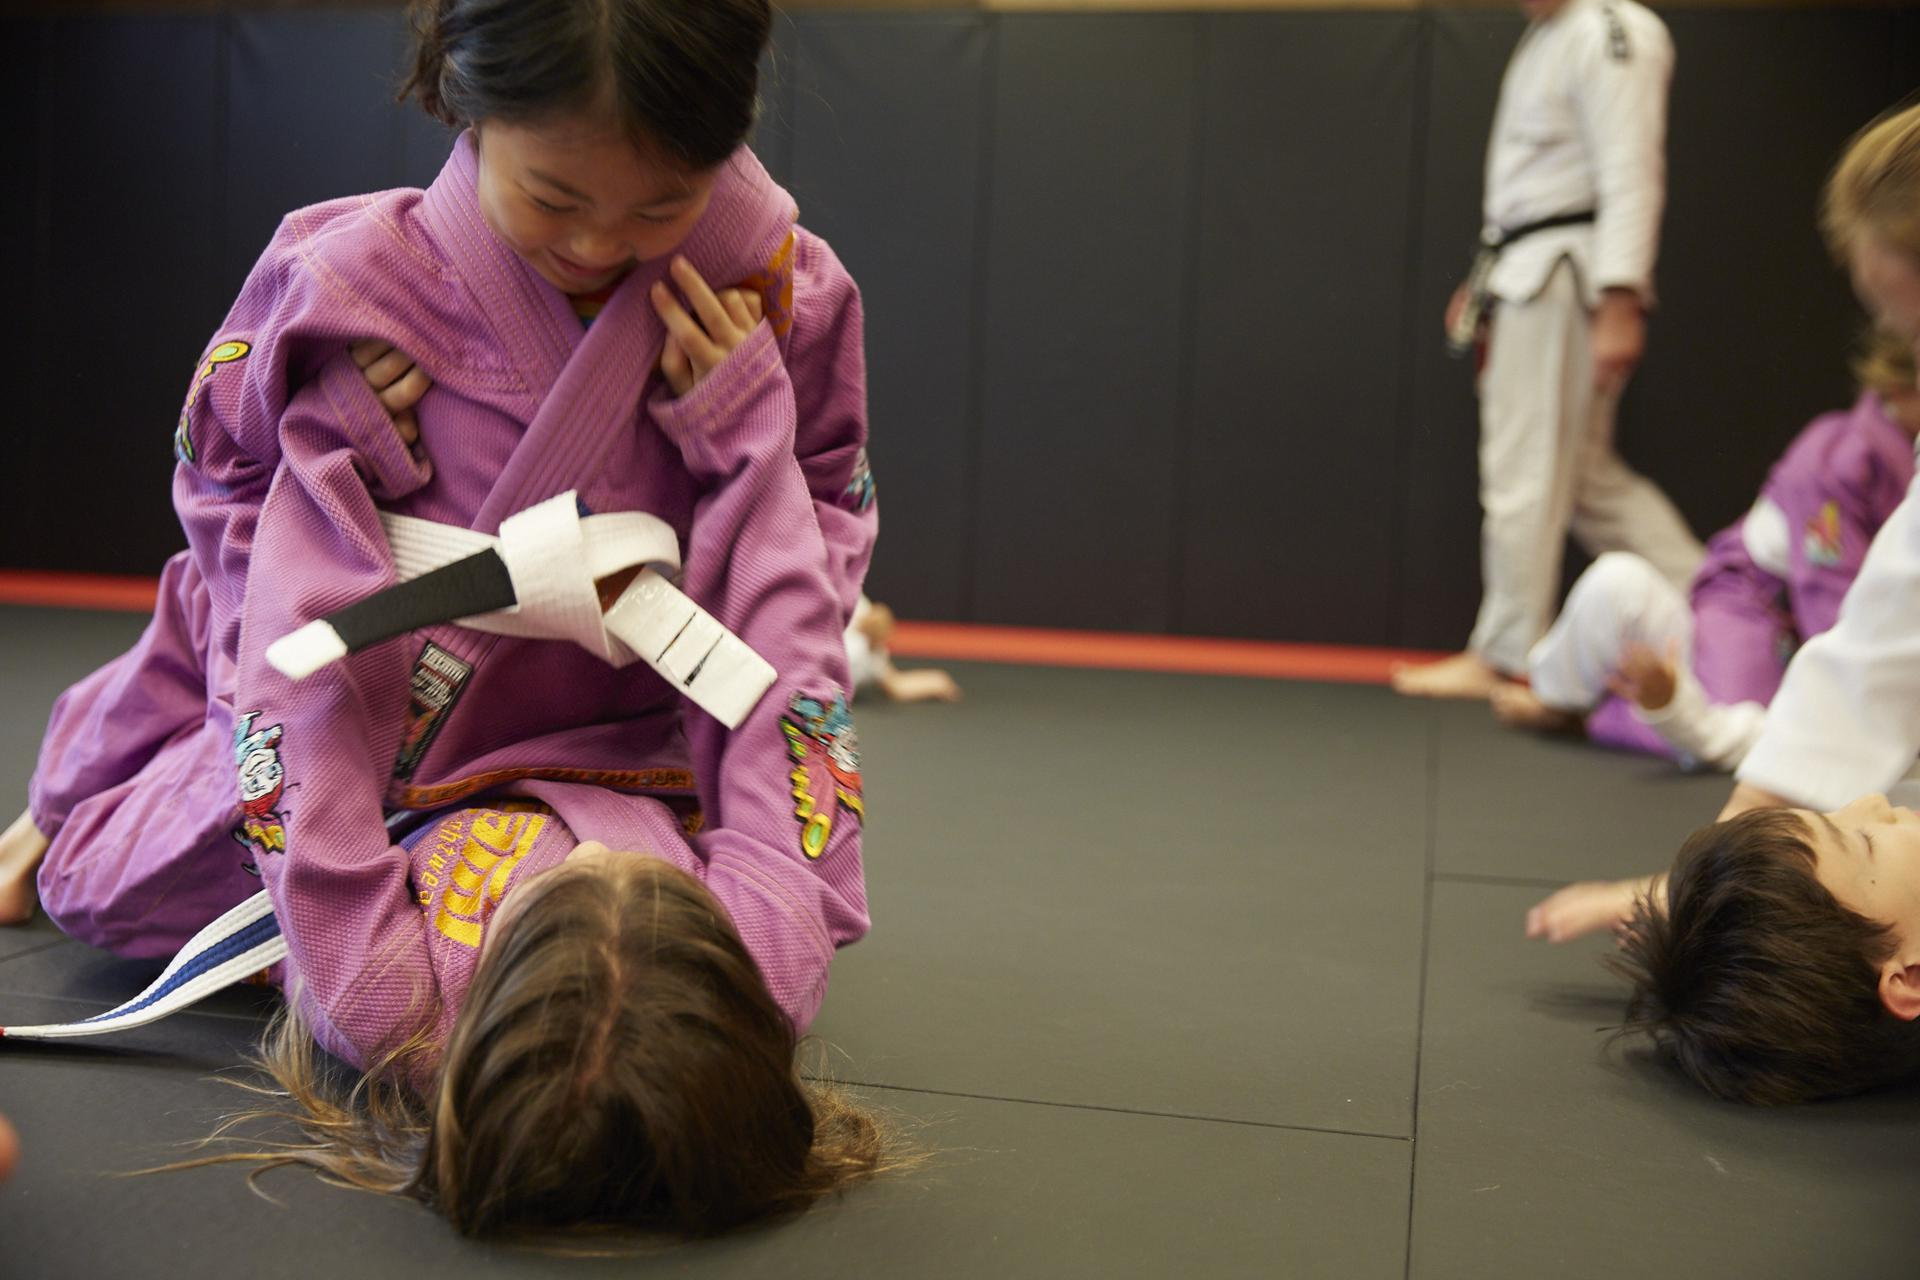 two girls smiling at each other a training grounds kids martial arts class